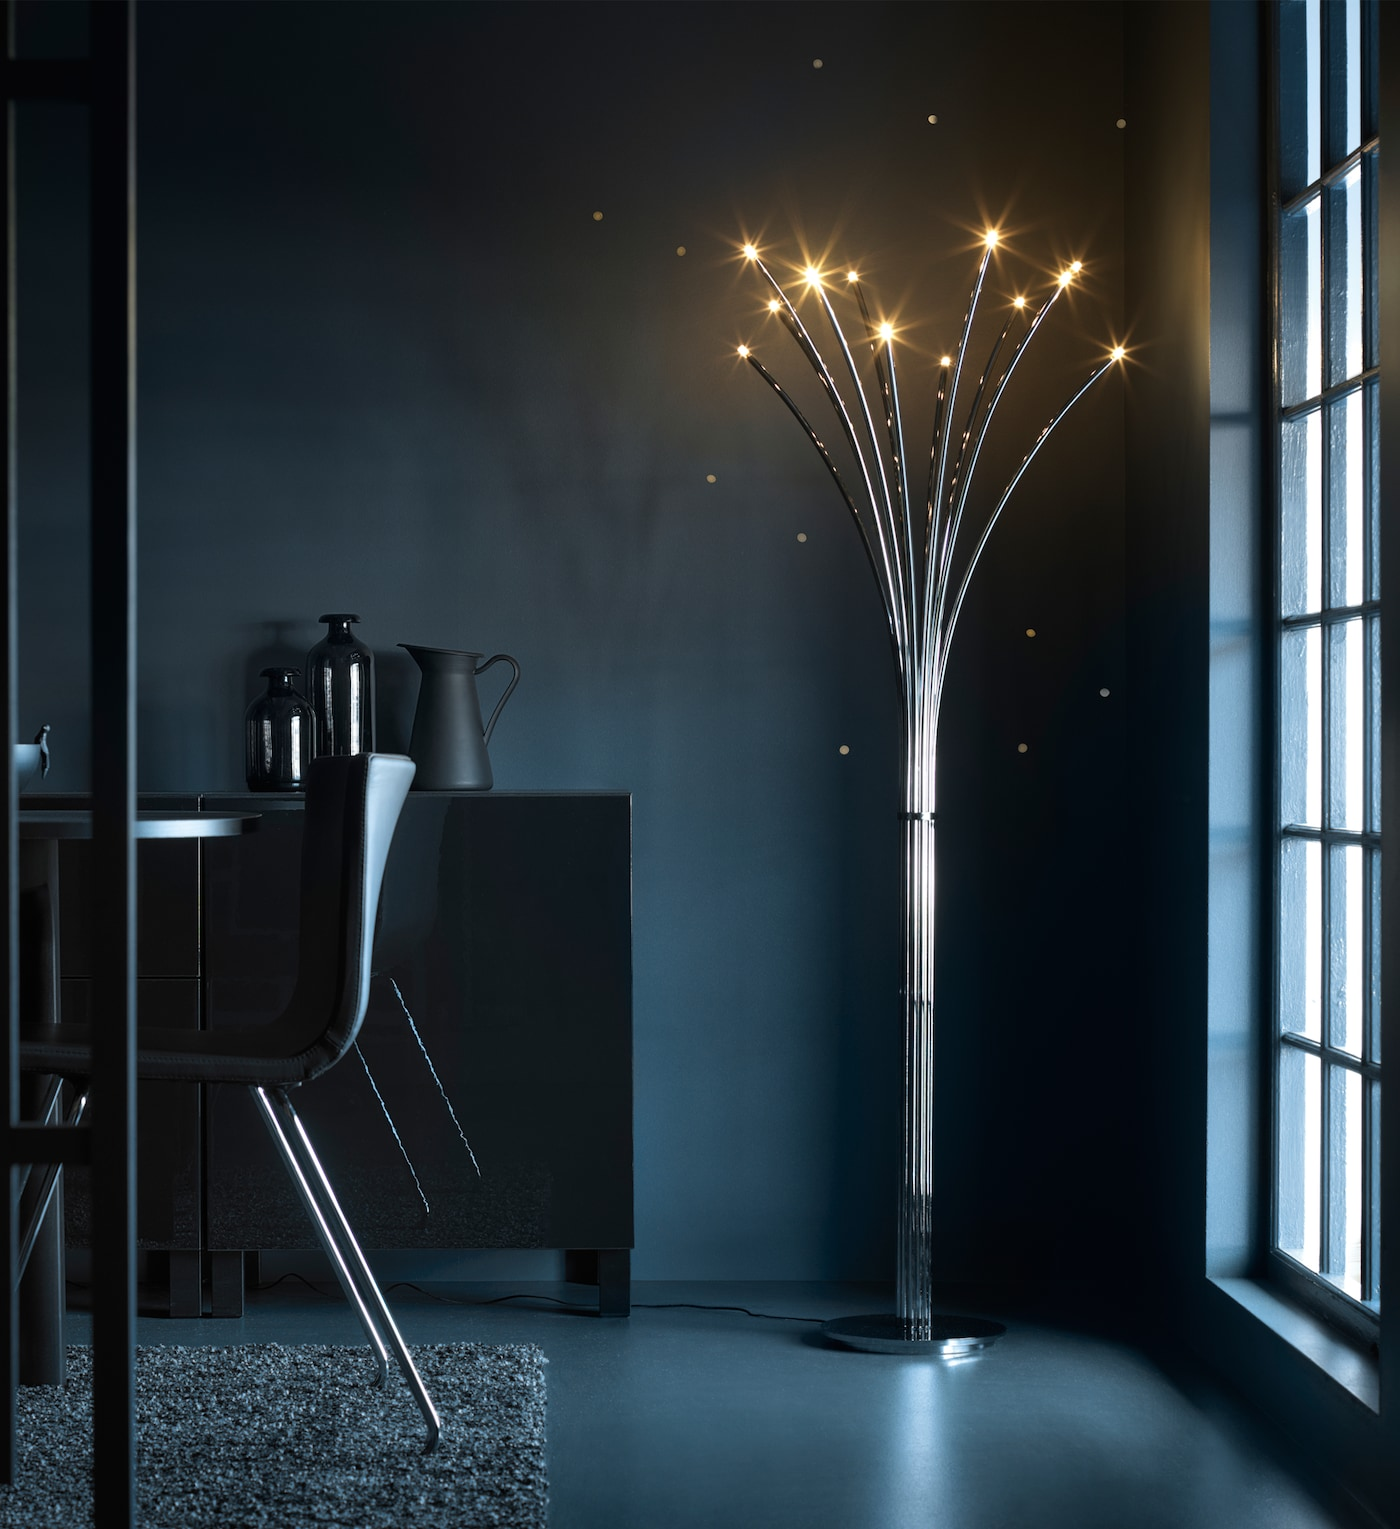 A dark dining room with a lit floor lamp in the corner. The floor lamp has a stainless steel base and at the top sparkling LED lights that looks like fireflies.